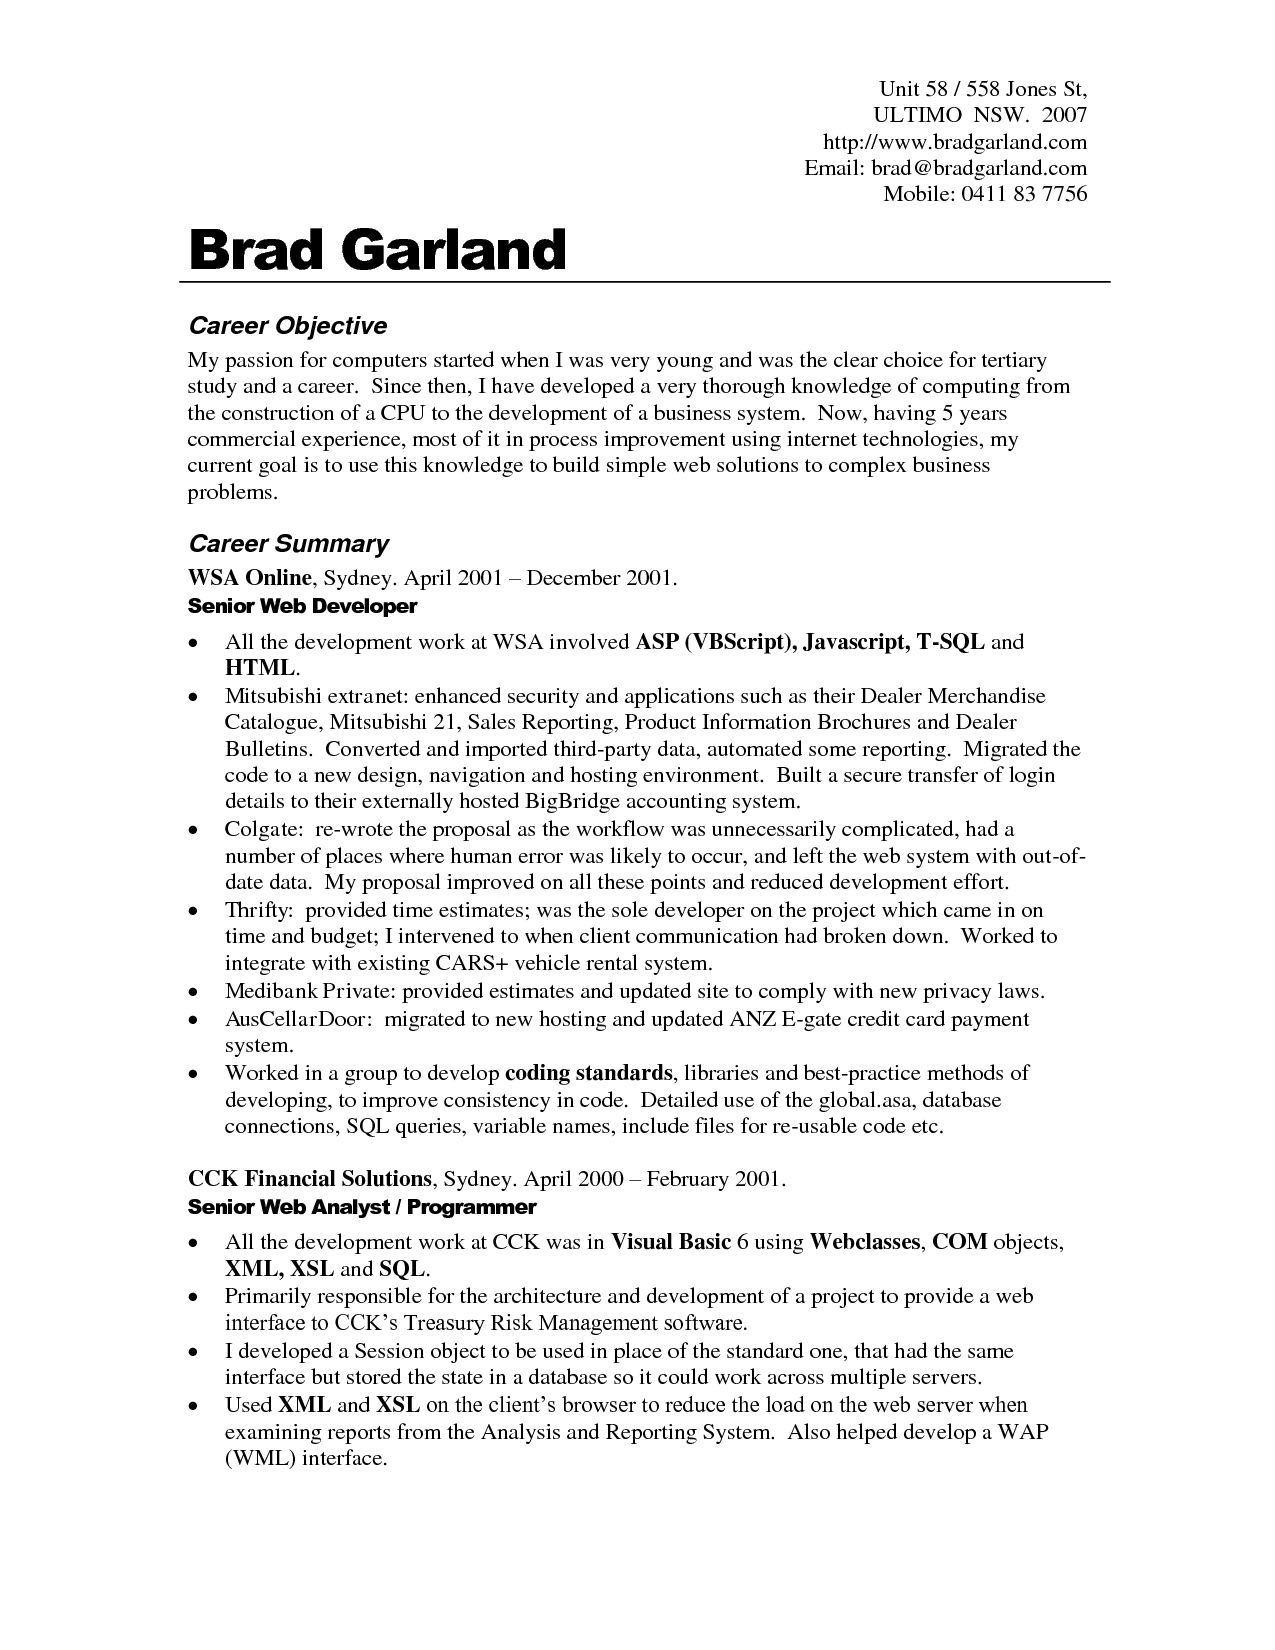 Samples Of Objectives For A Resume Unique Resume Examples Job Objective  Sample Resume Entry Level And .